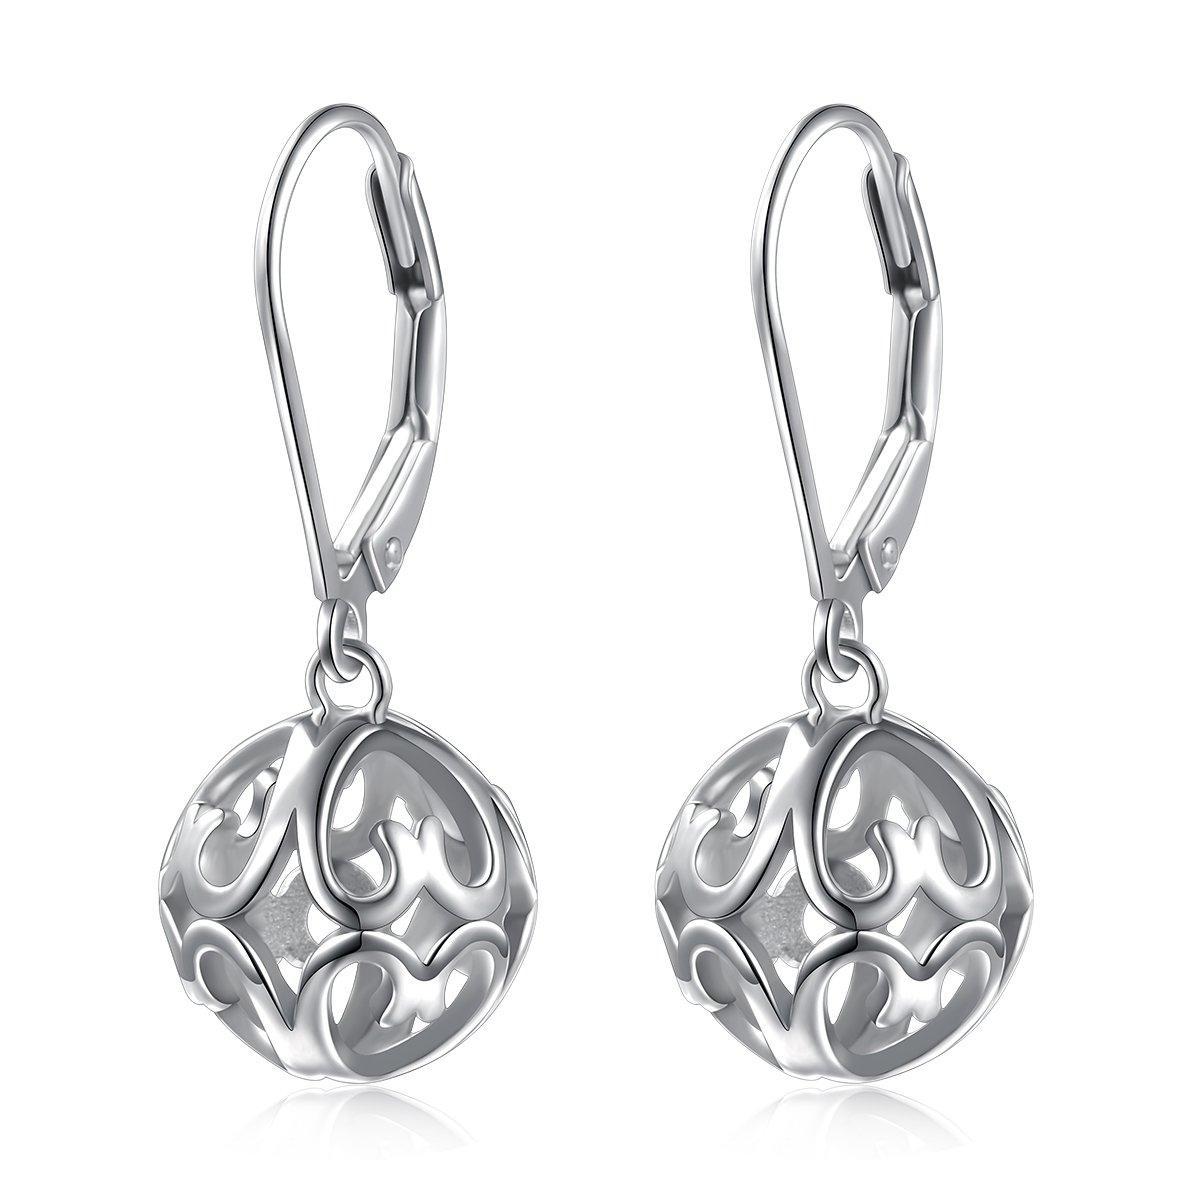 SILVER MOUNTAIN S925 Sterling Silver Heart Round Ball Dangle Drop Leverback Earrings for Women Girl Mother Sister Wife Gift